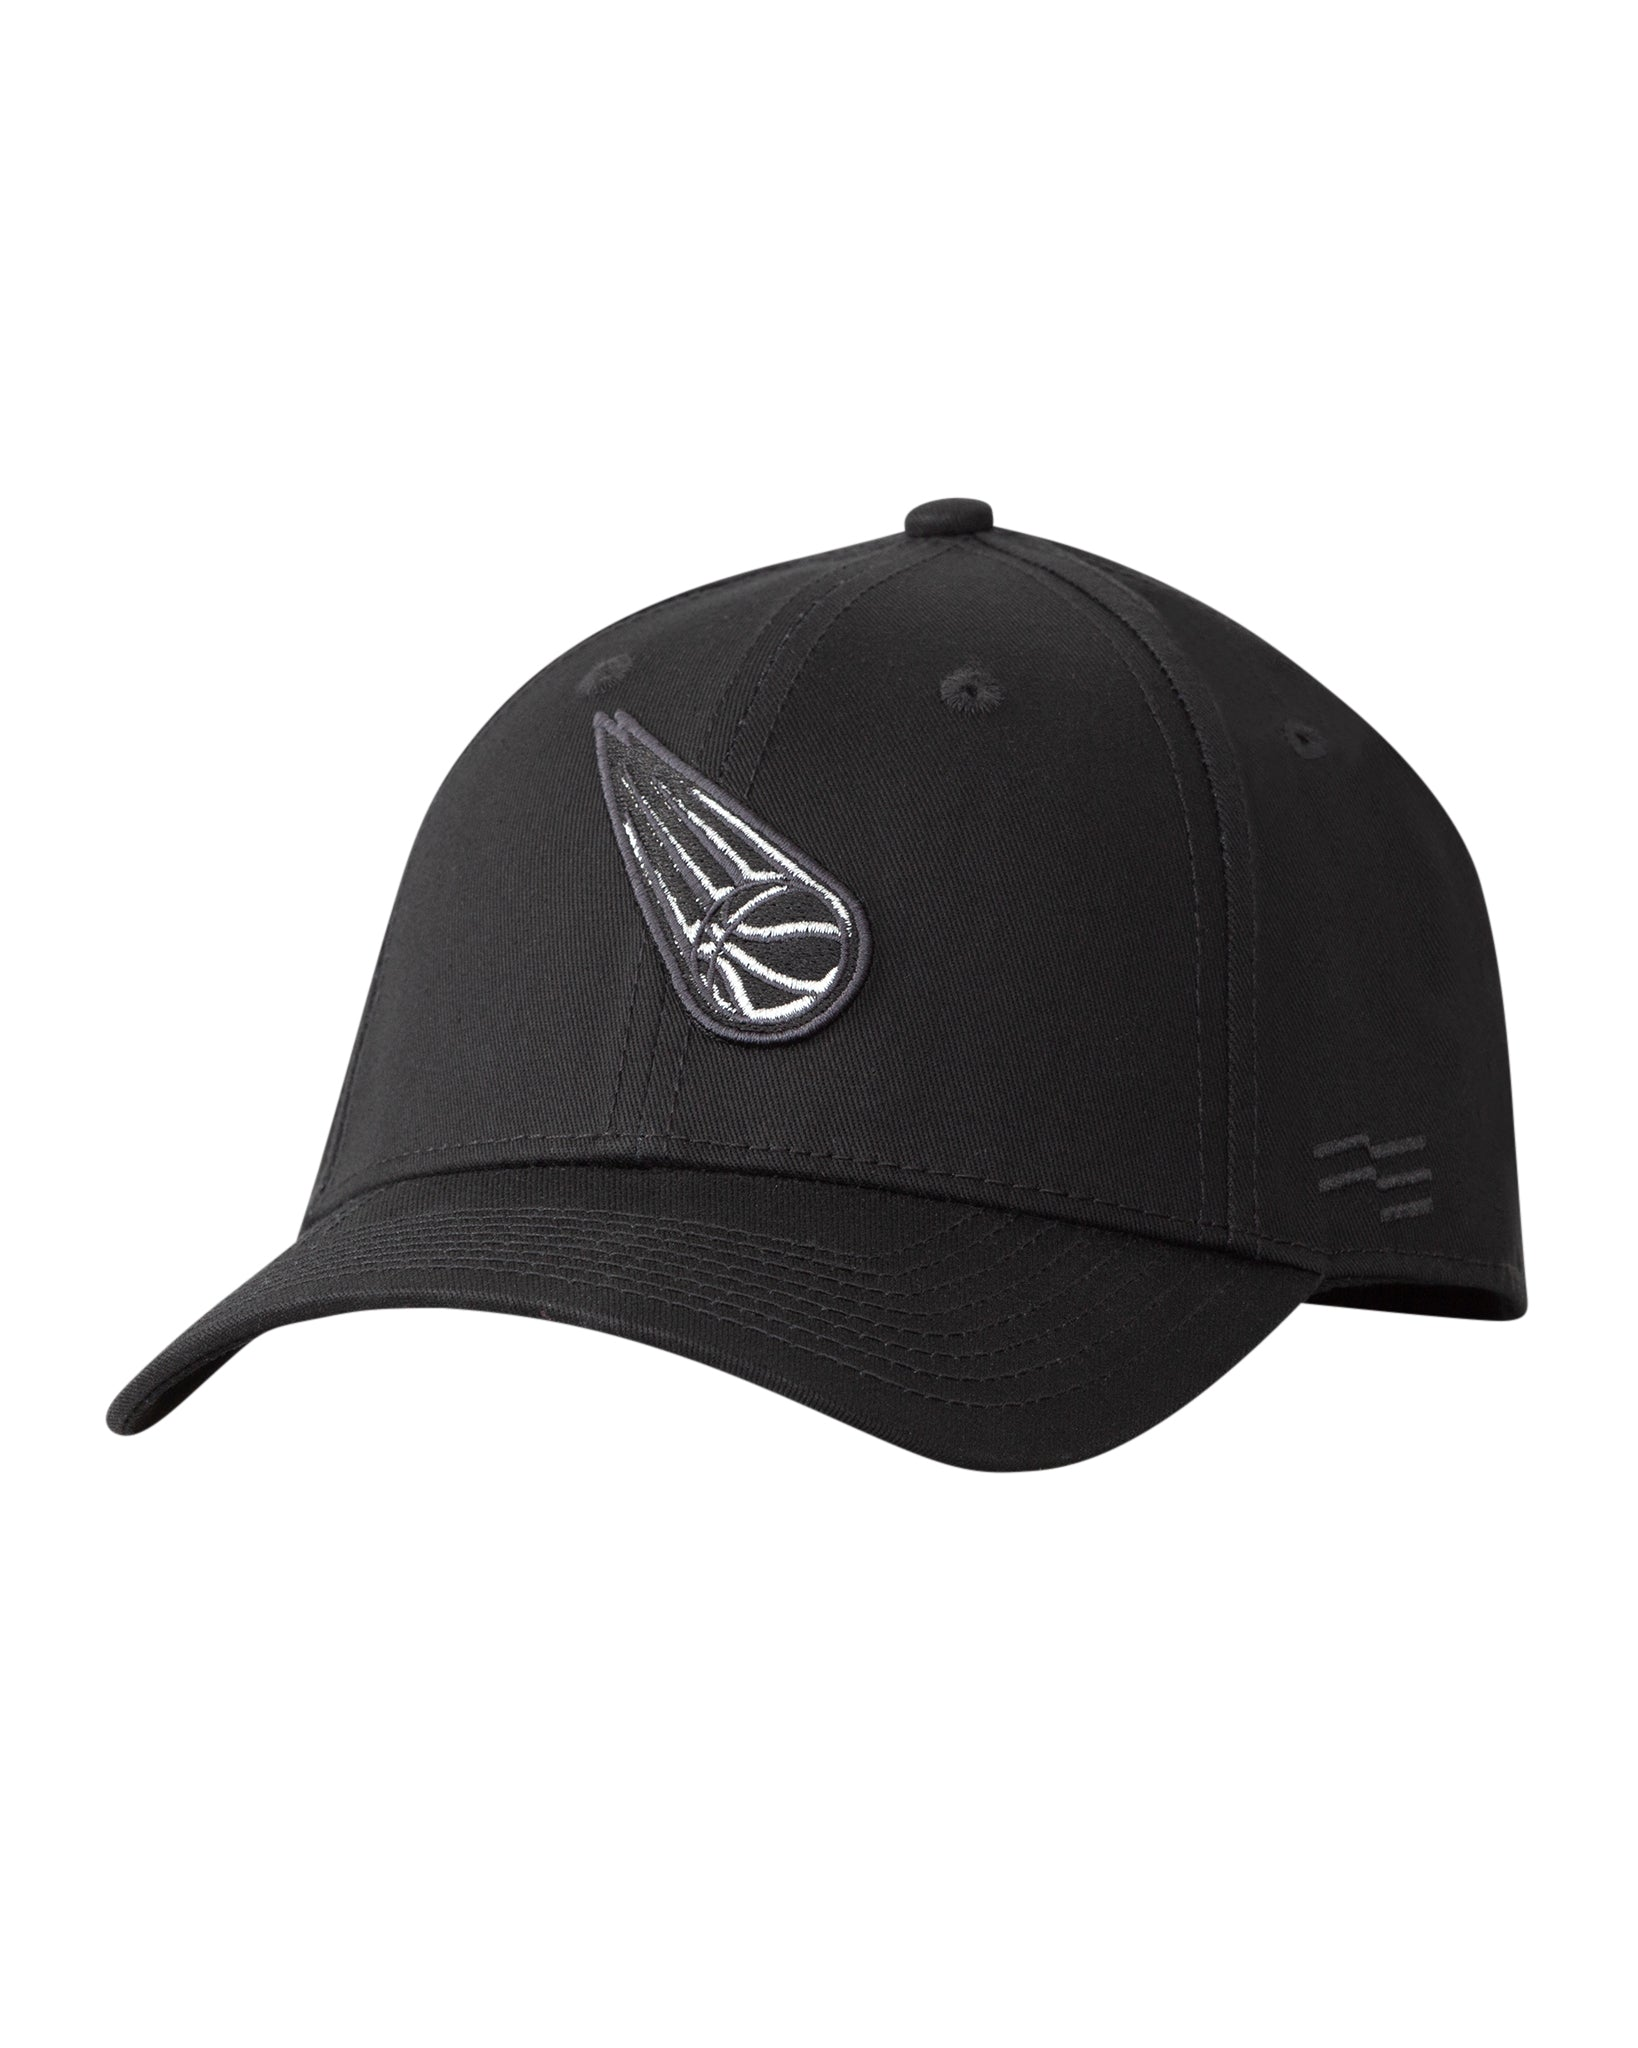 Brisbane Bullets Black on Black Premium Curved Peak Cap